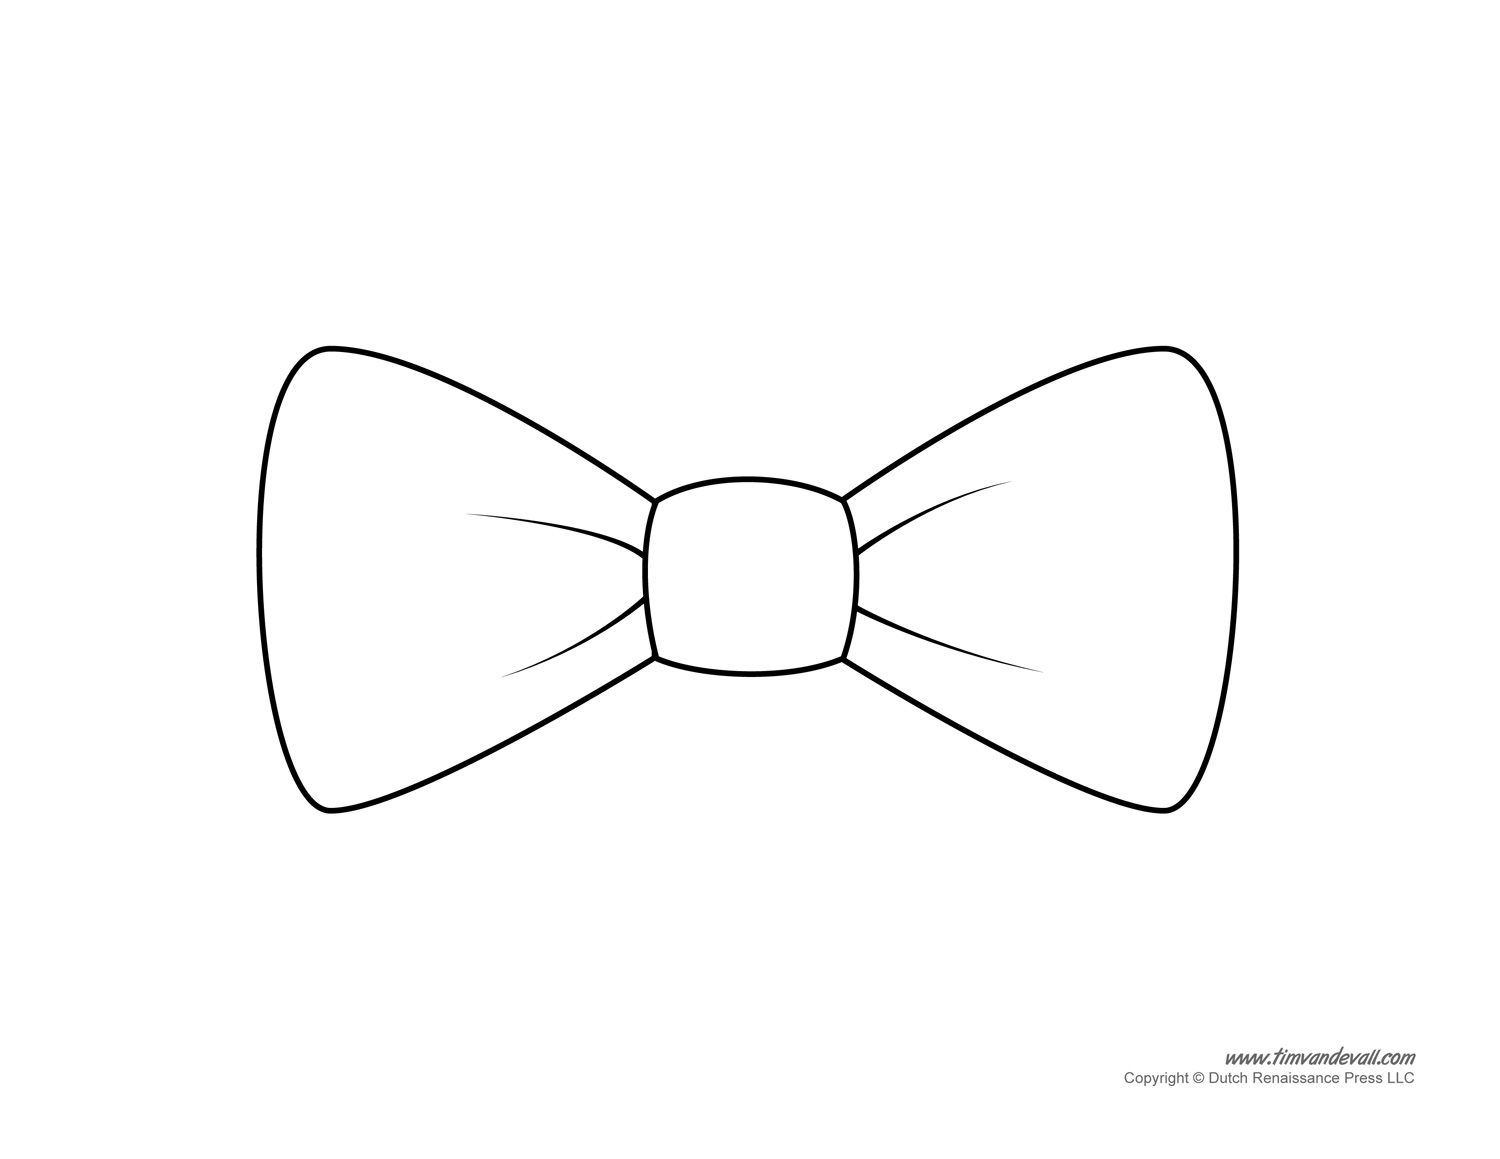 Bow tie clipart outline.